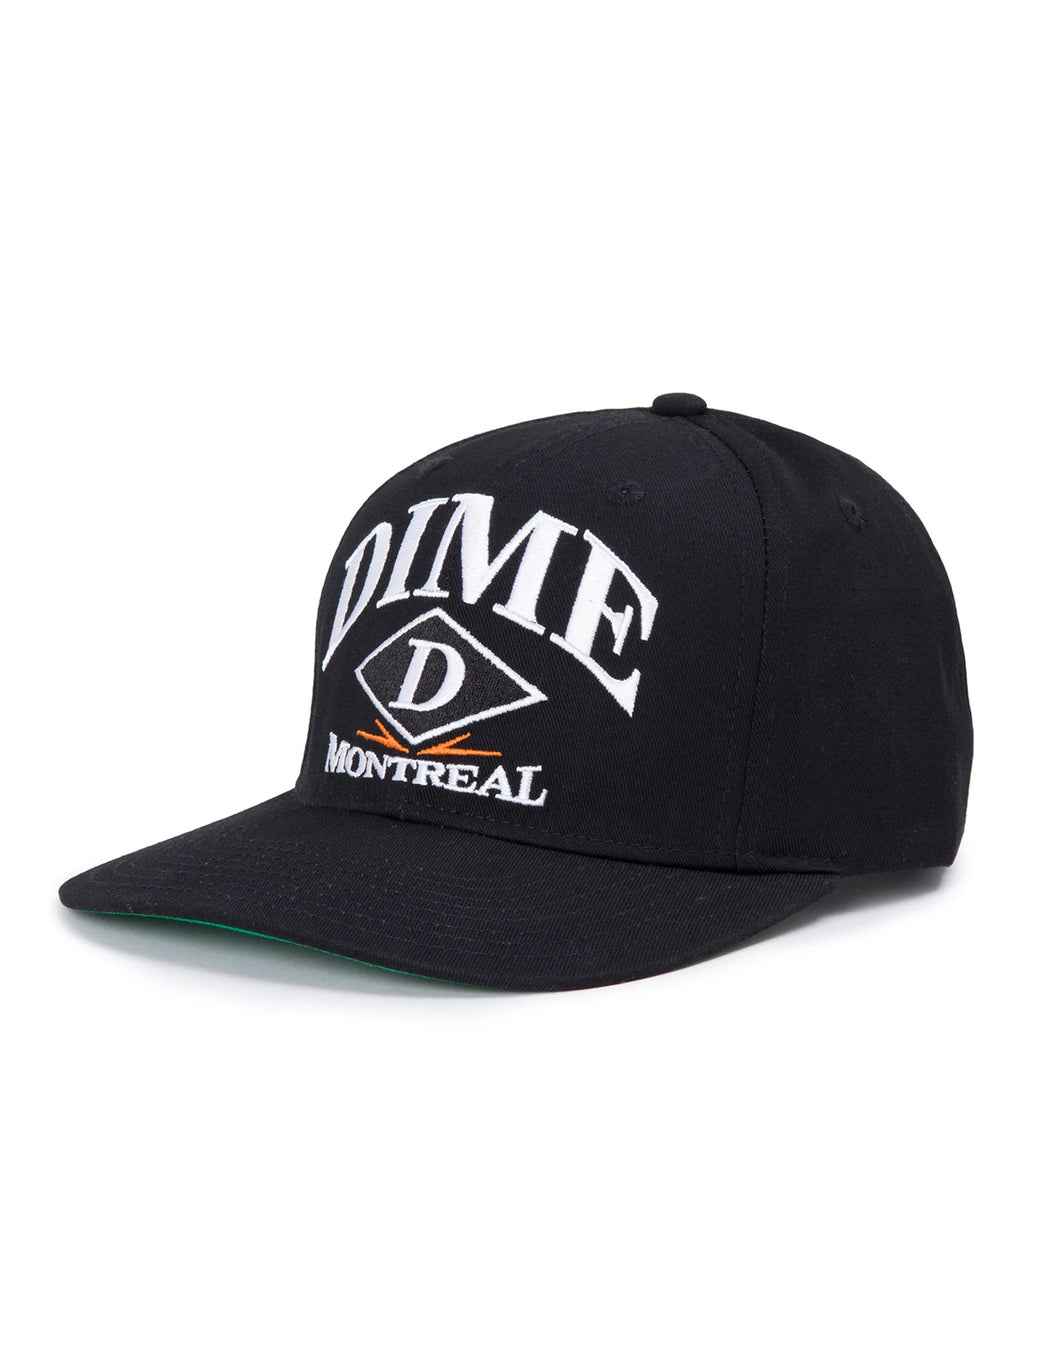 Dime Montreal Hat, Black